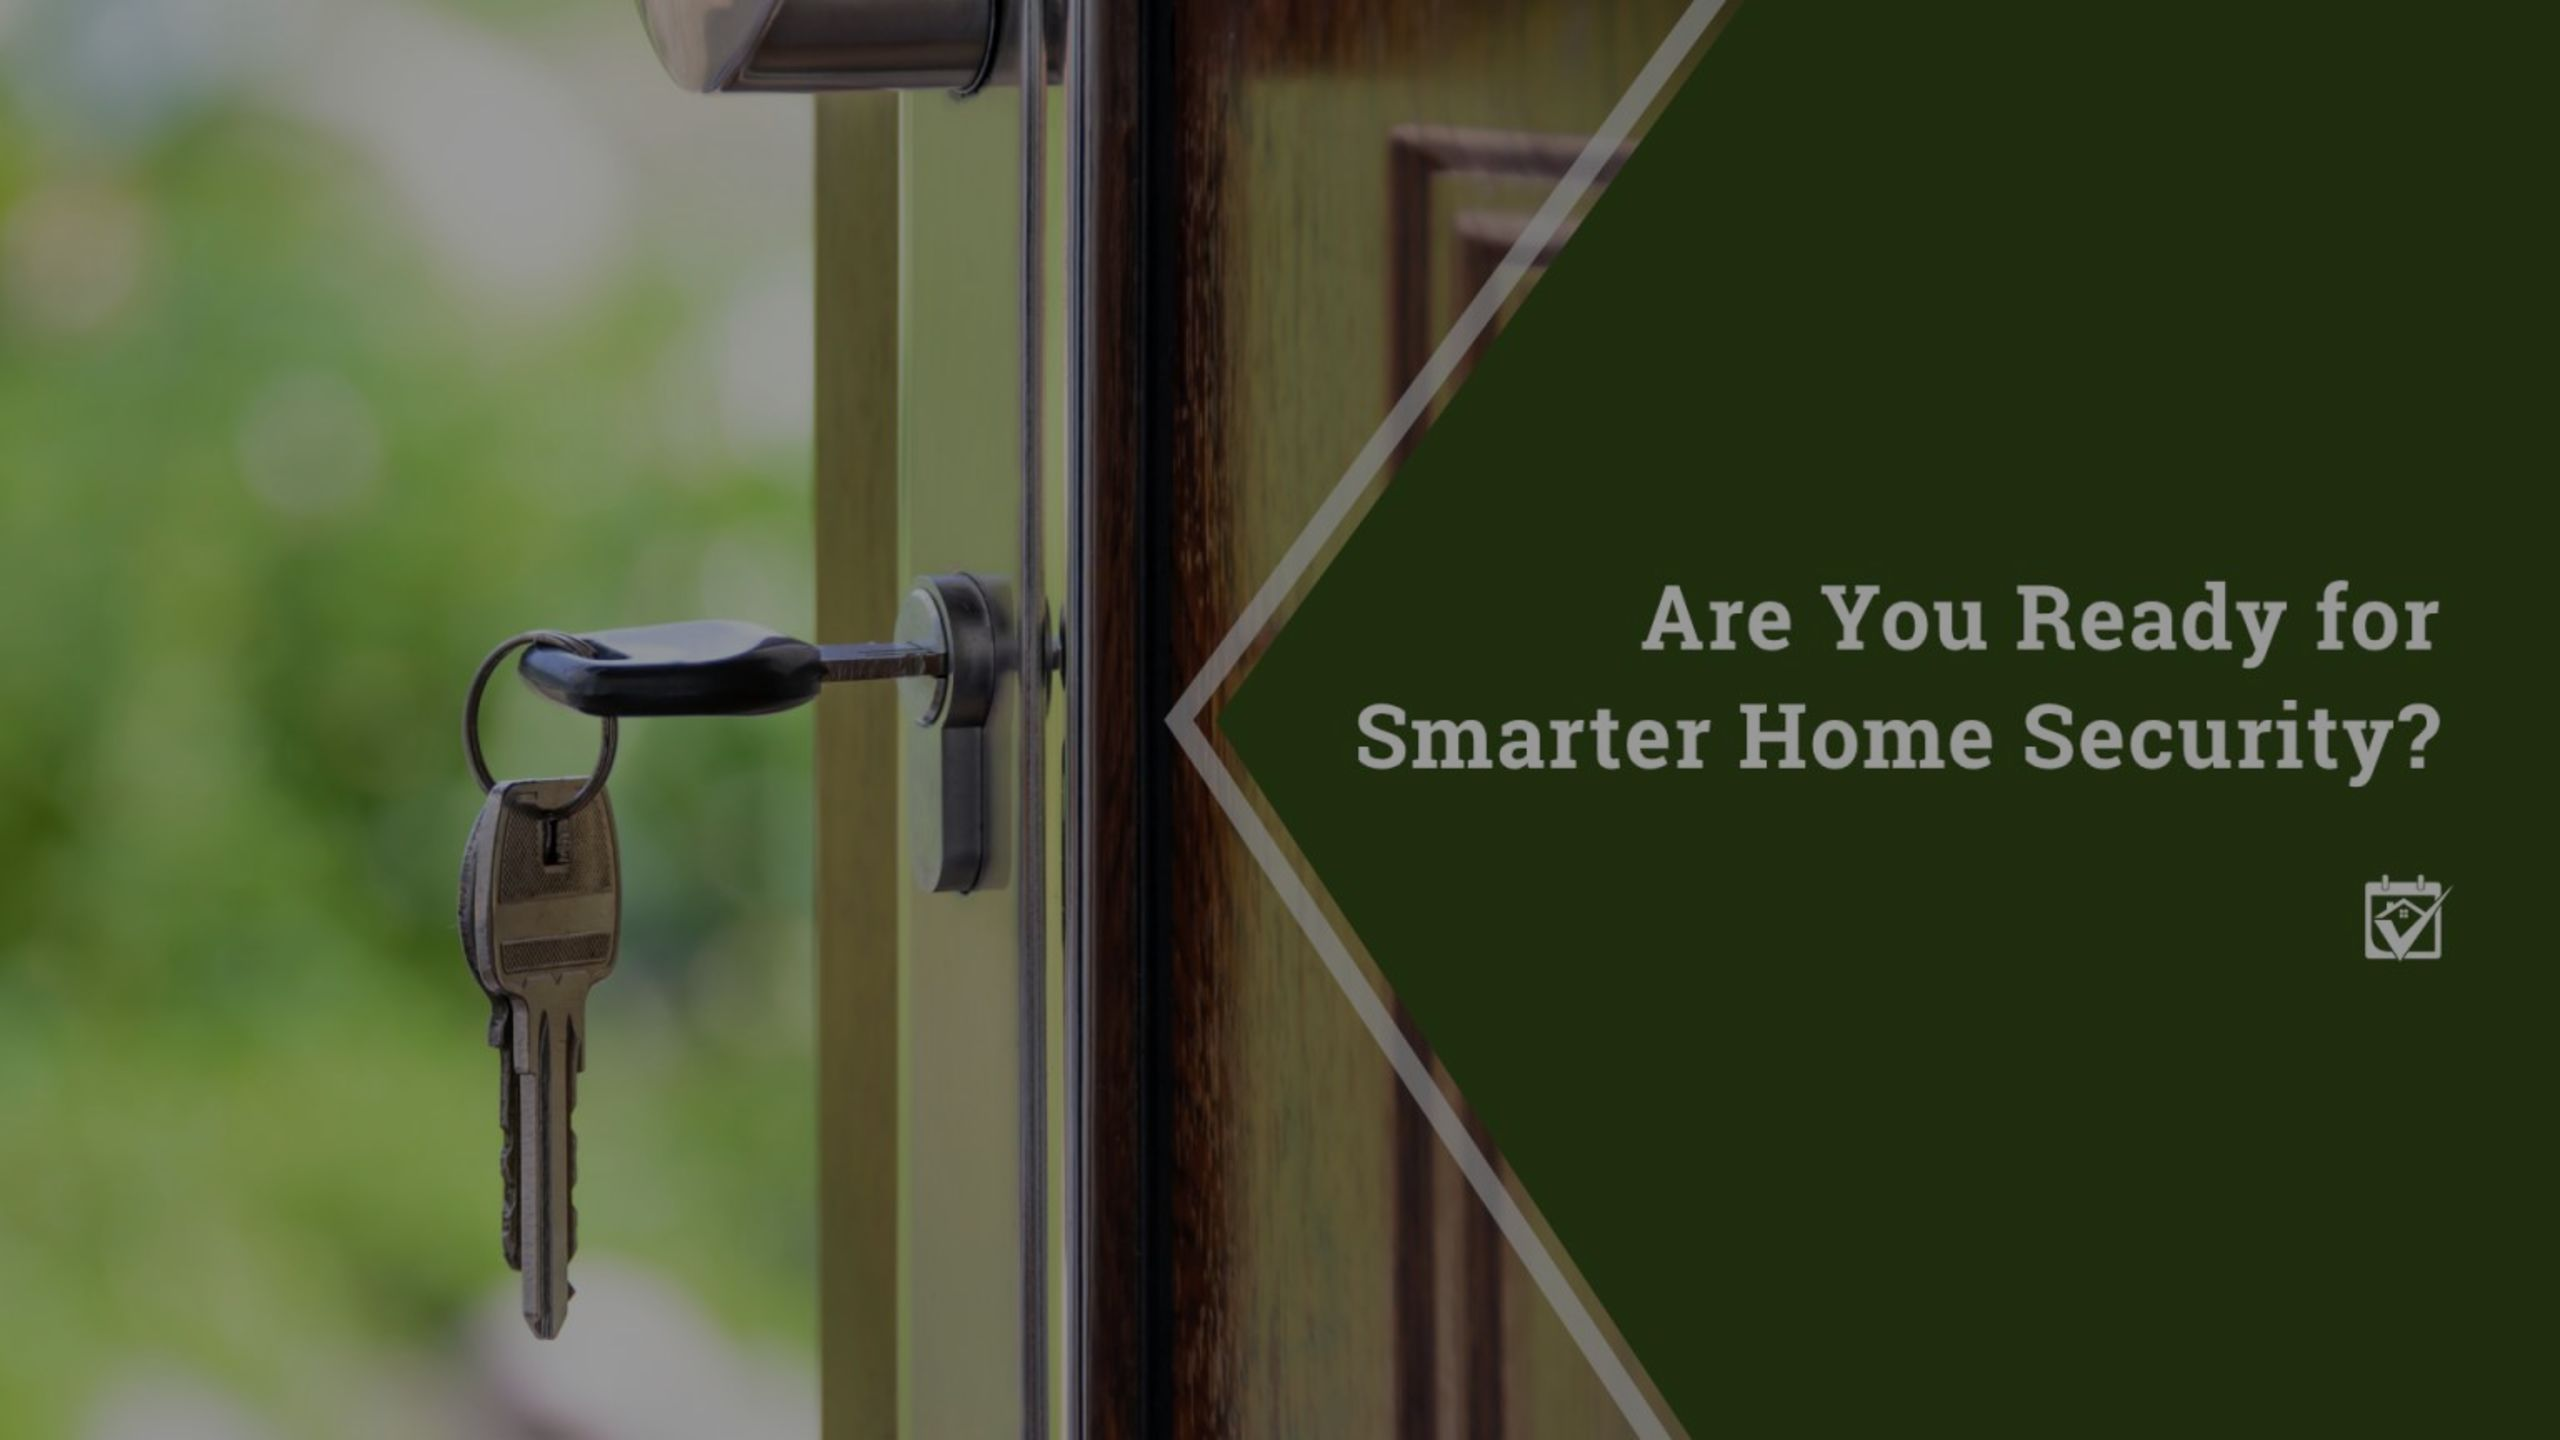 Are You Ready for Smarter Home Security?